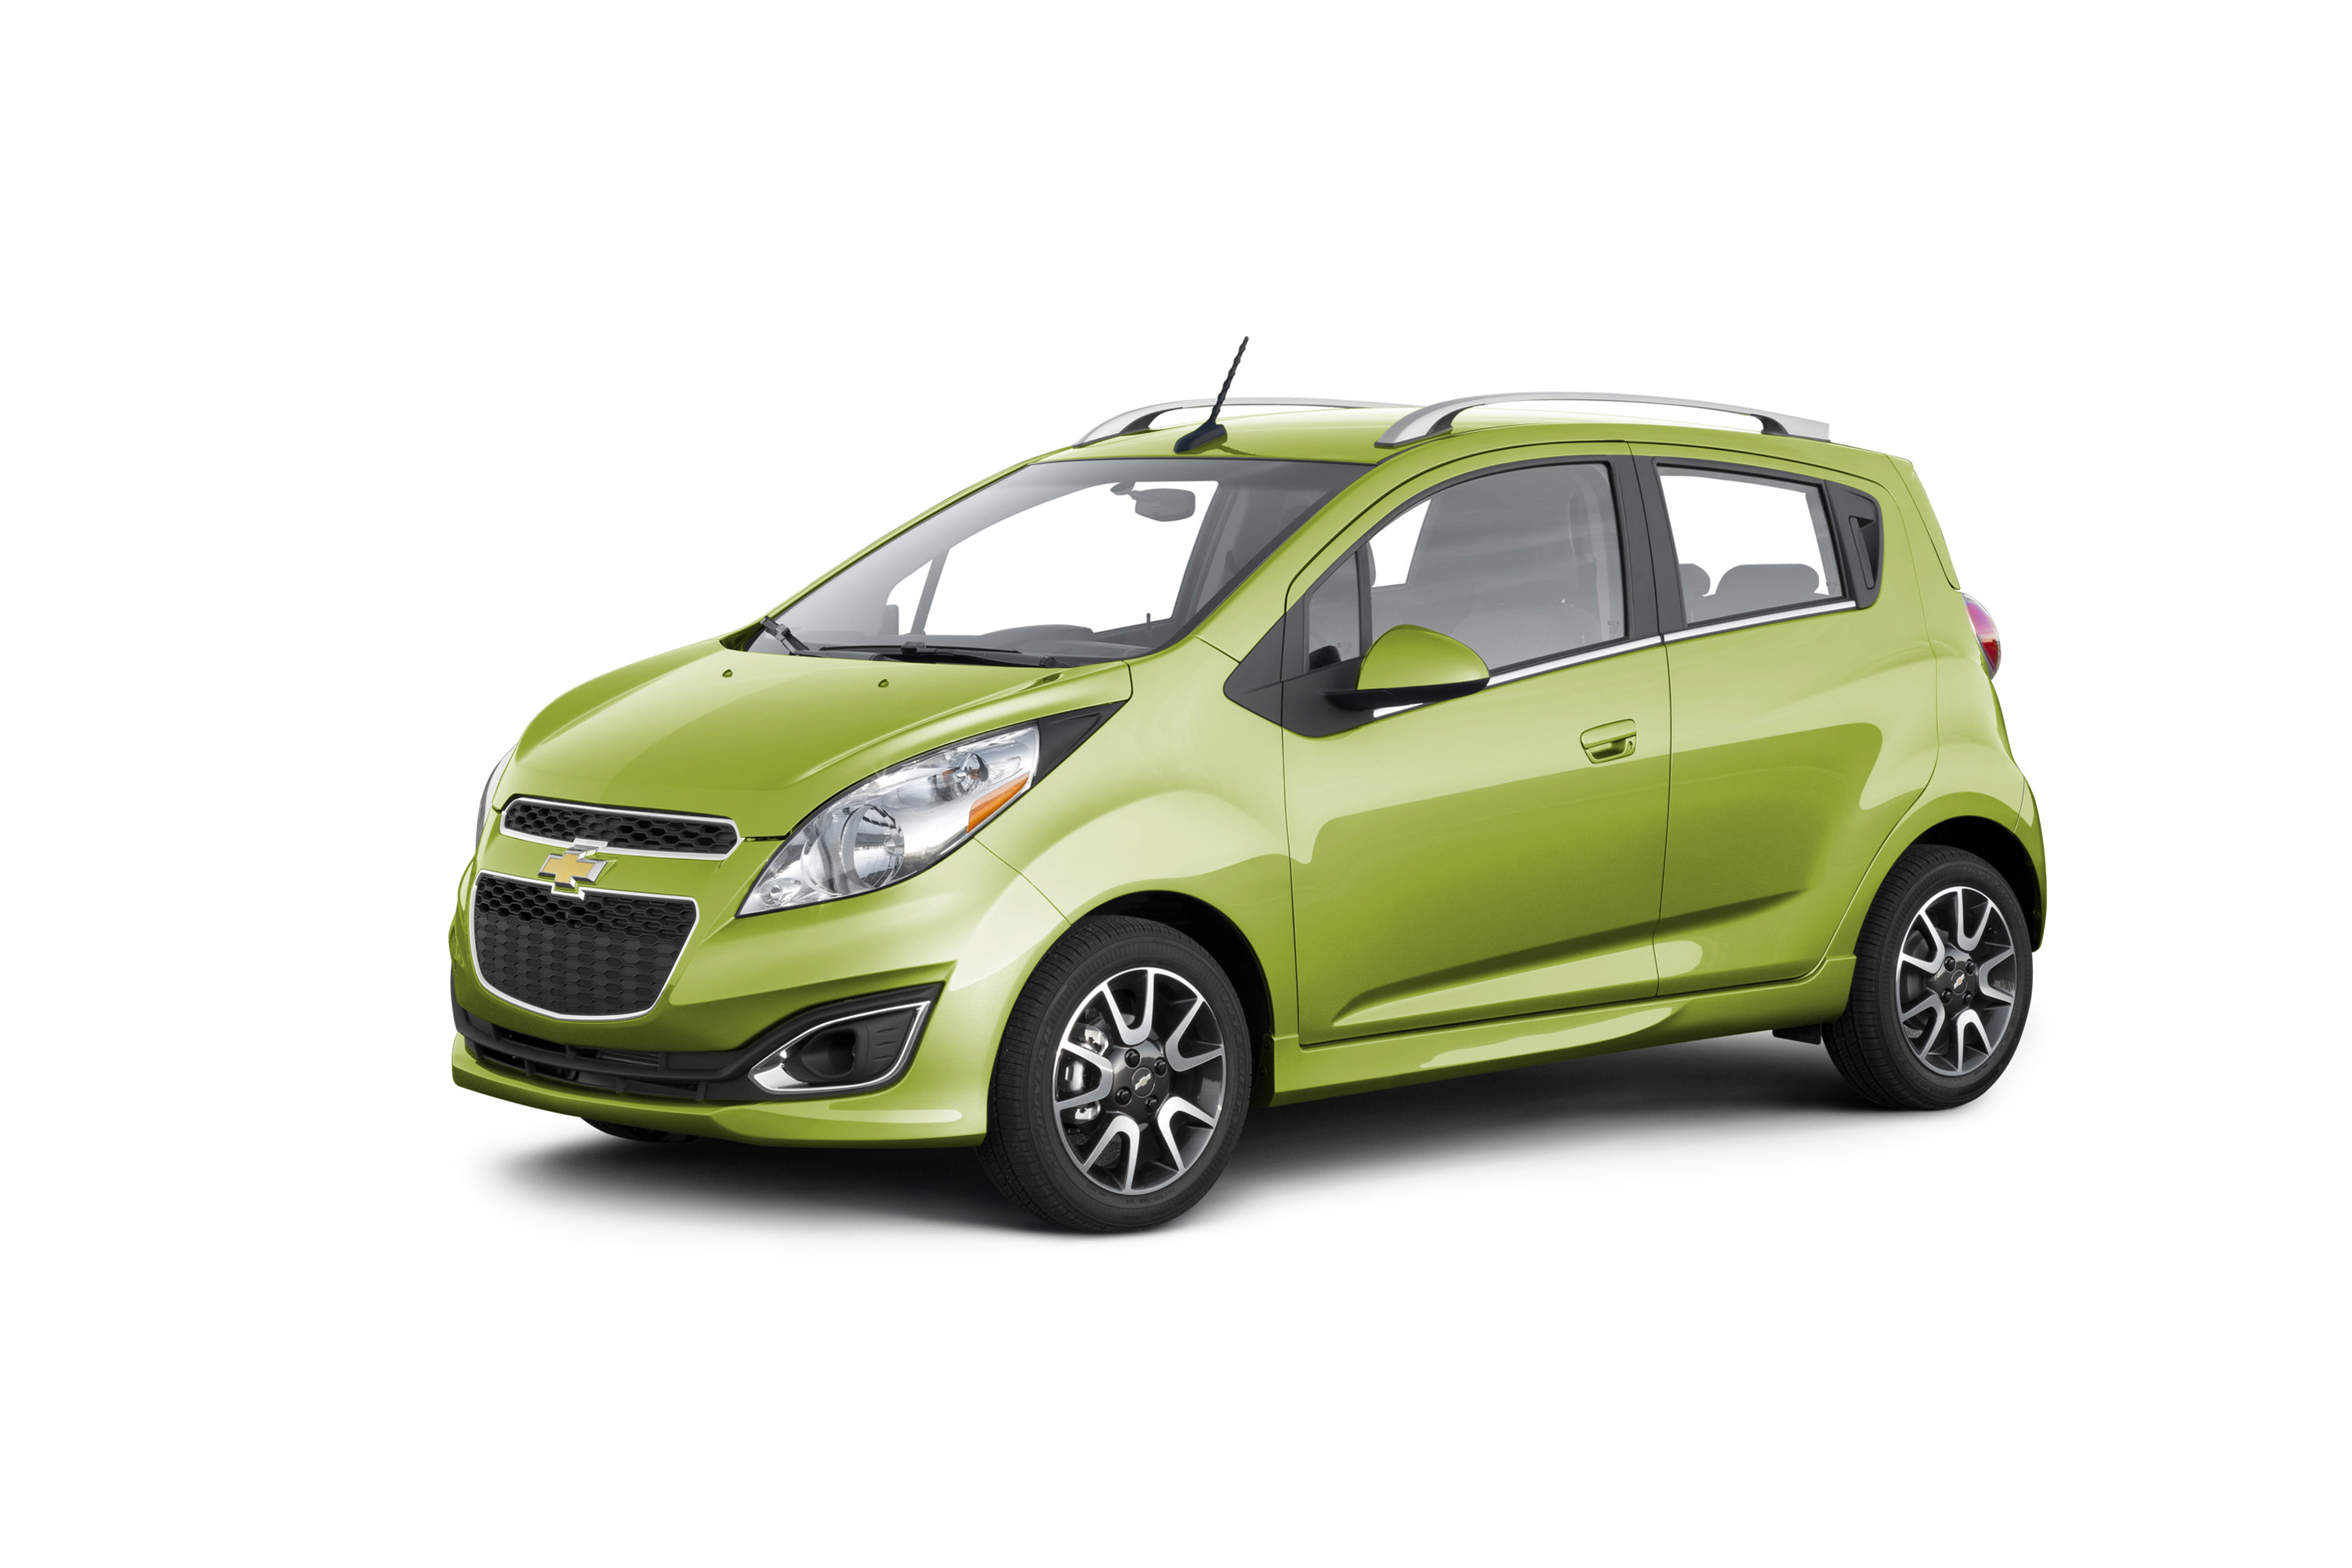 2013 Chevrolet Spark Pricing Announced